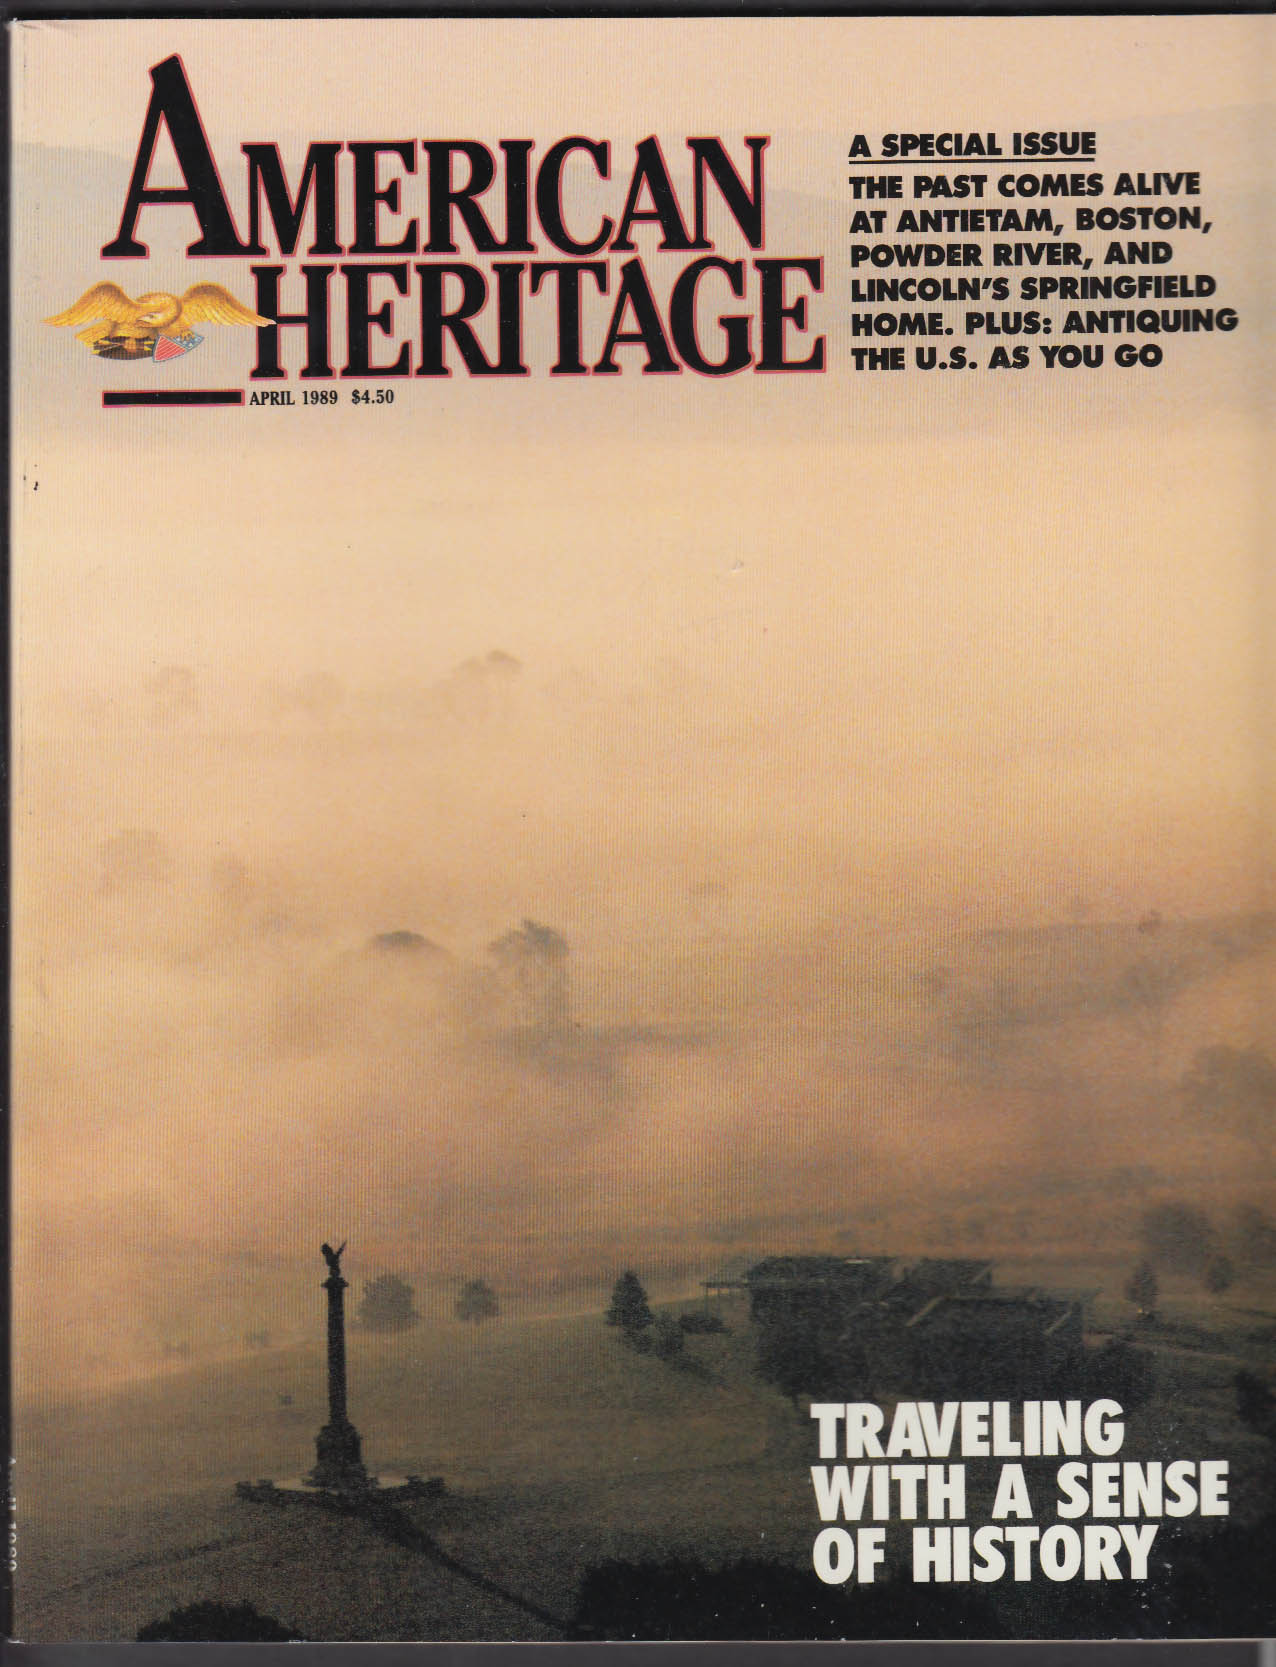 AMERICAN HERITAGE Powder River Boston Antietam Lincoln Springfield ++ 4 1989